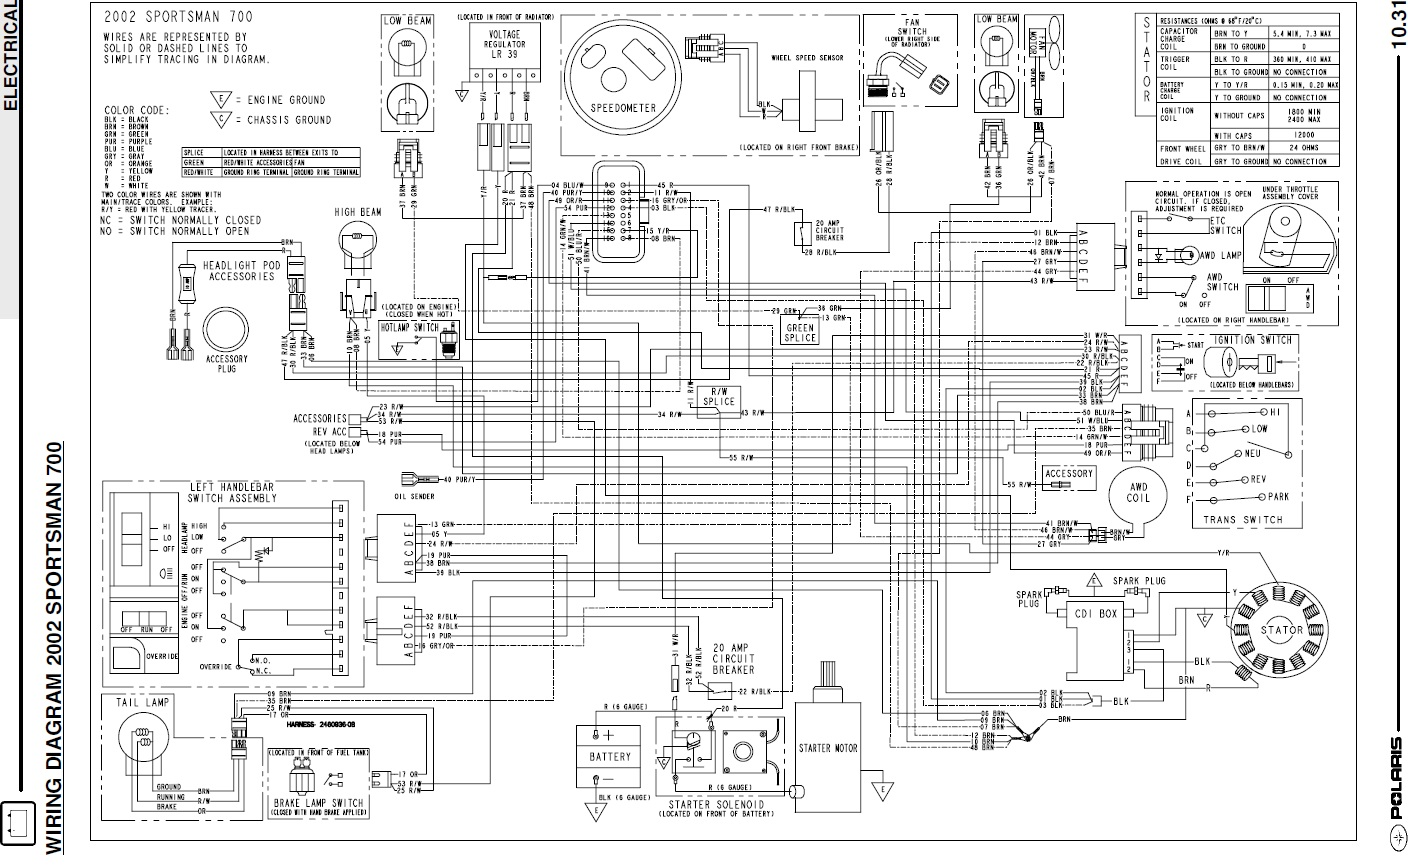 25374d1432945183 04 sportsman 700 no spark wiring diag 700 polaris rzr wiring diagram polaris solenoid wiring diagram \u2022 free 2013 polaris ranger wiring diagram at n-0.co